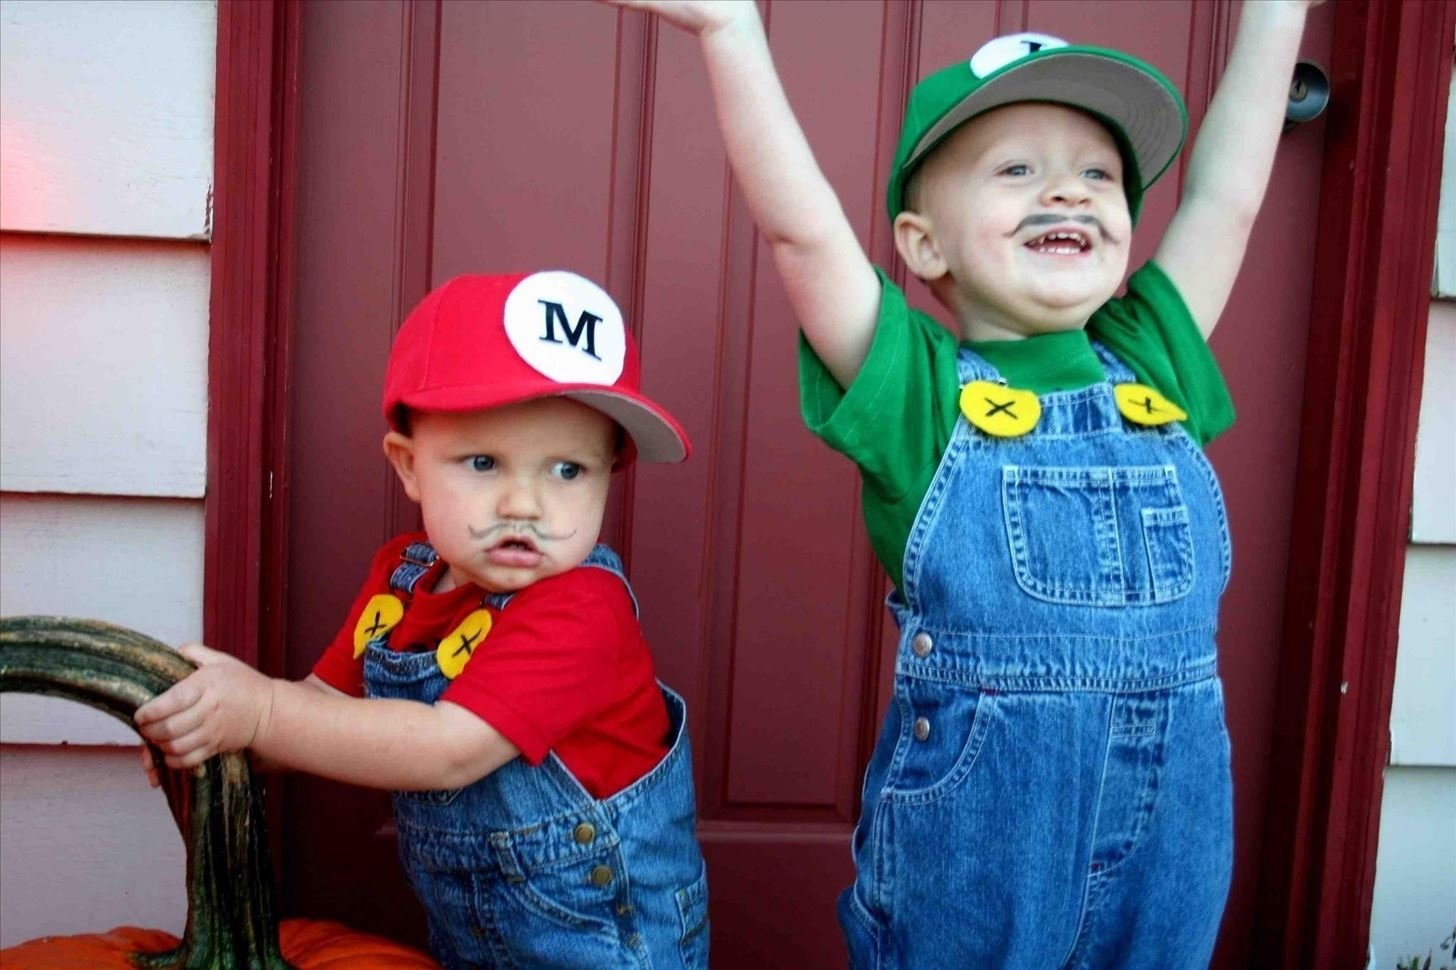 10 Amazing One Year Old Halloween Costume Ideas 10 cheap easy awesome diy halloween costumes for kids homemade 13